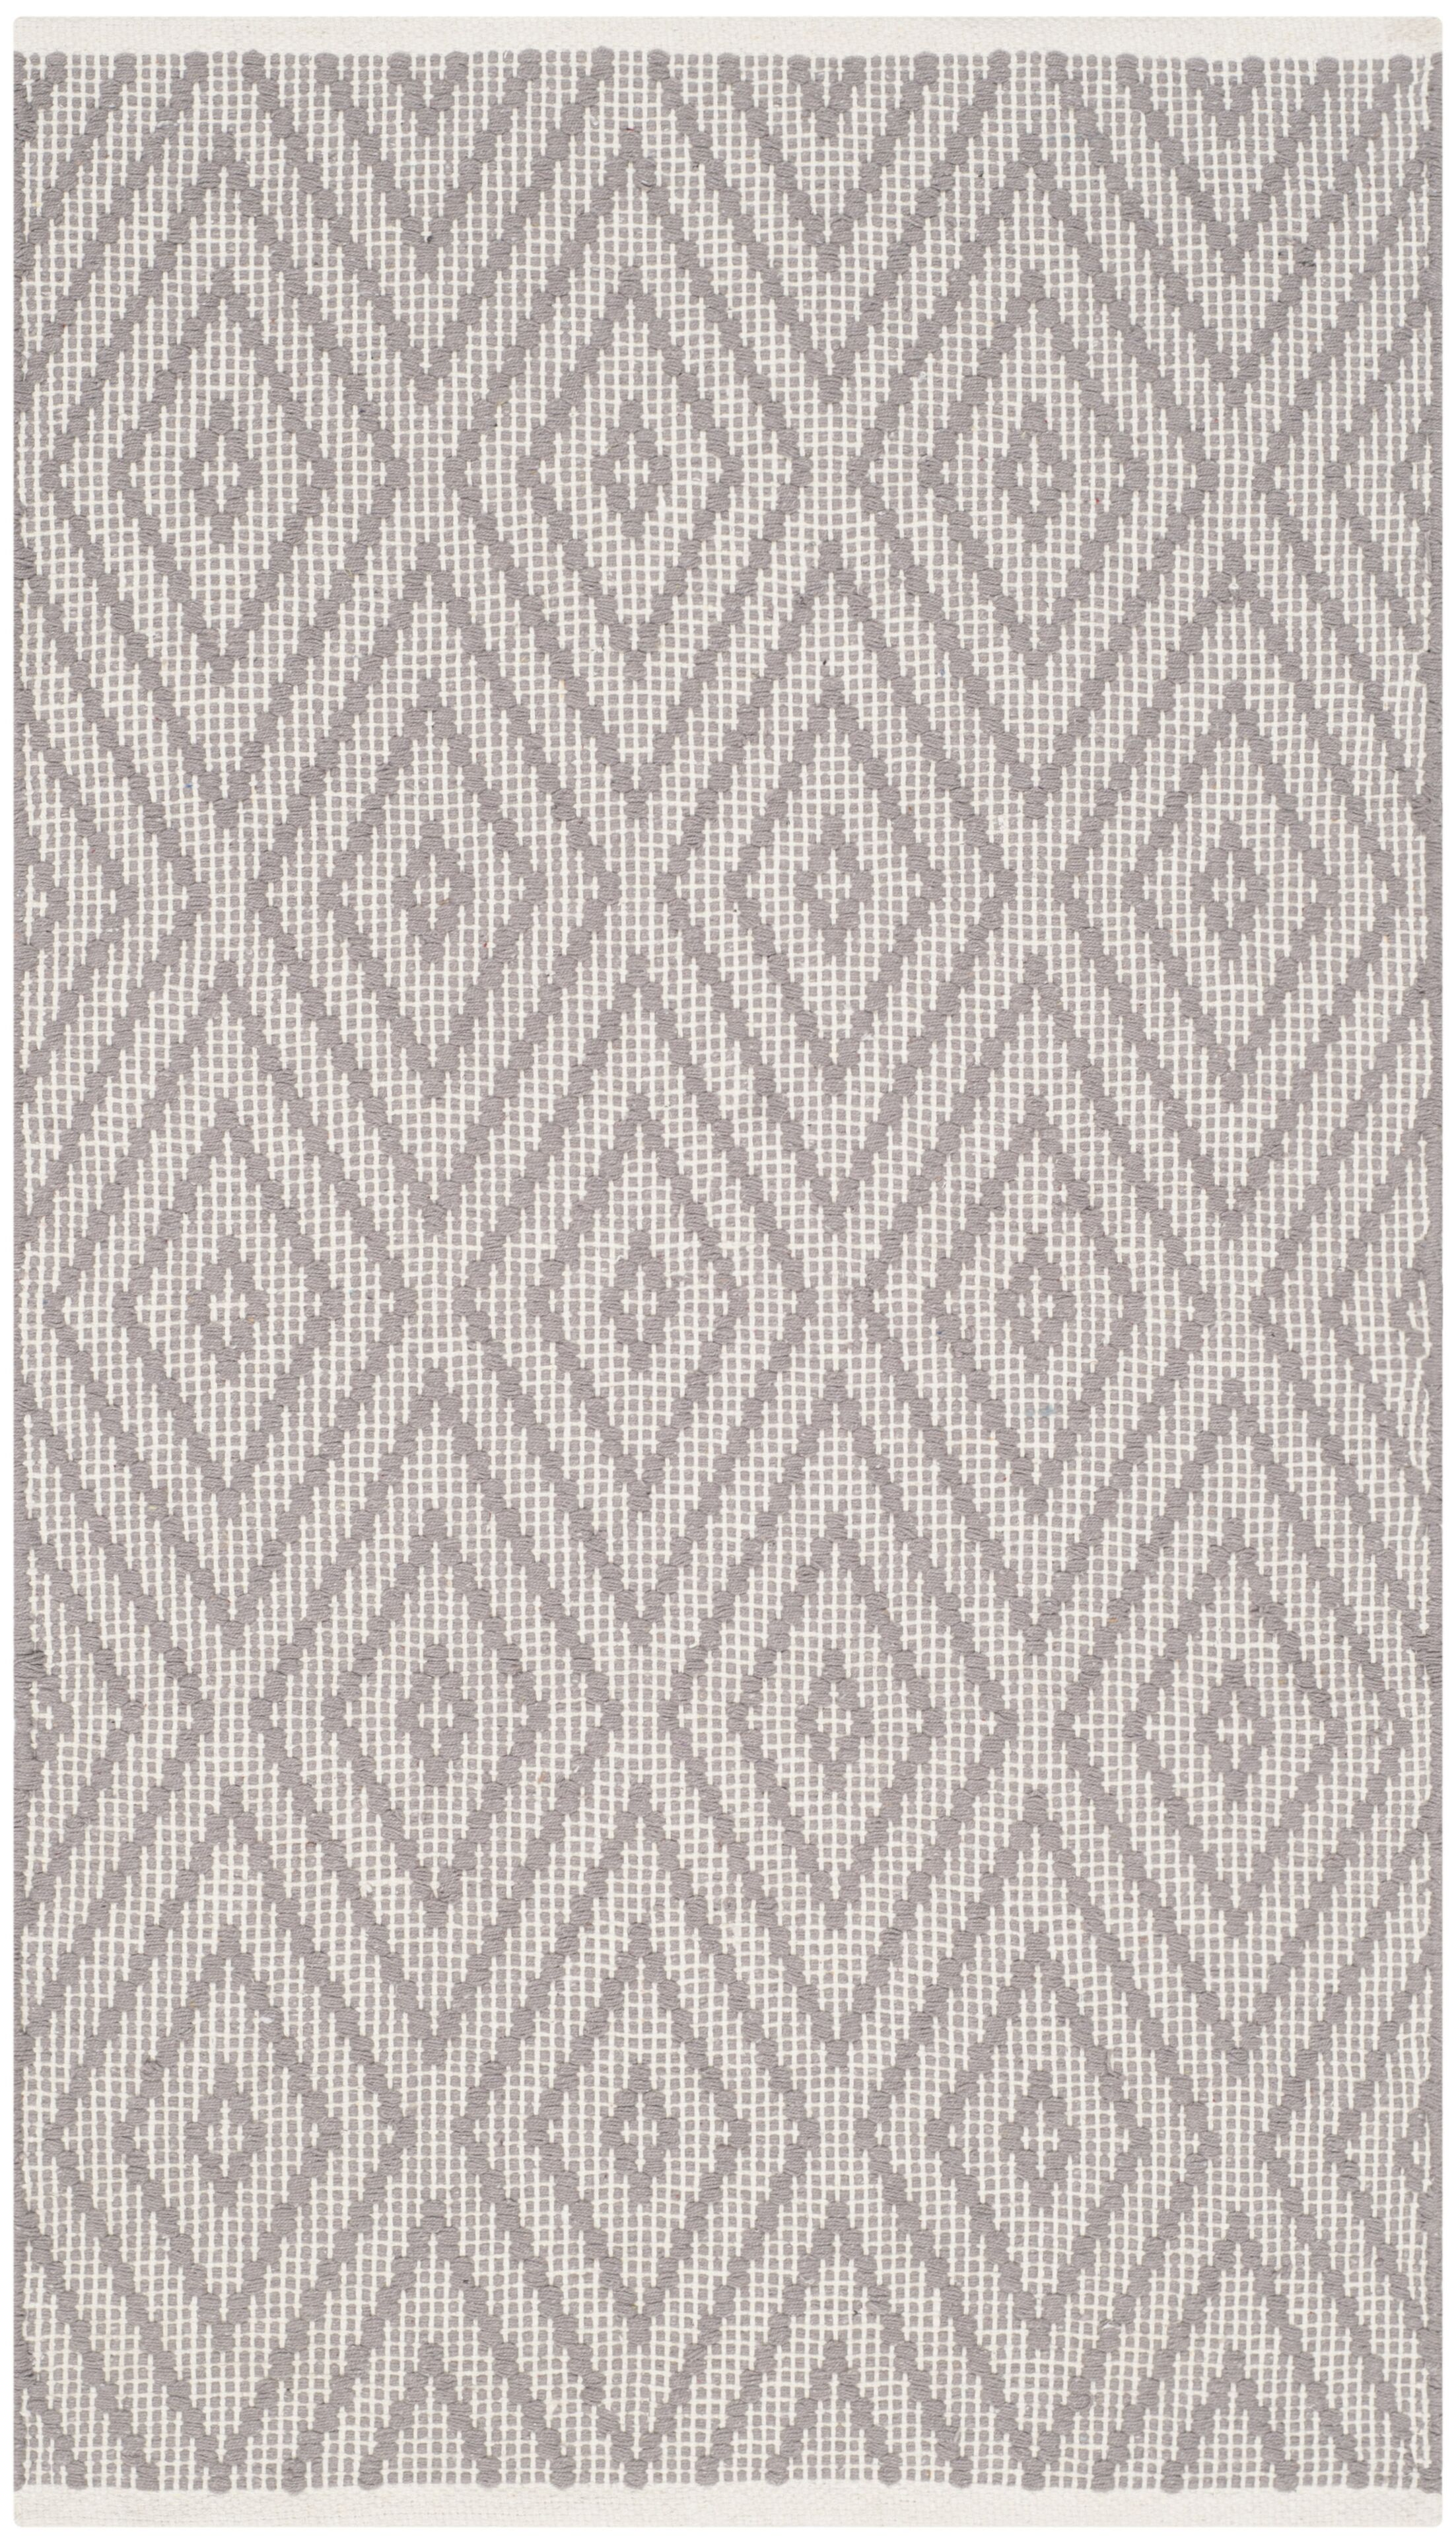 Alastair Hand-Woven Grey/Ivory Area Rug Rug Size: Runner 2'3